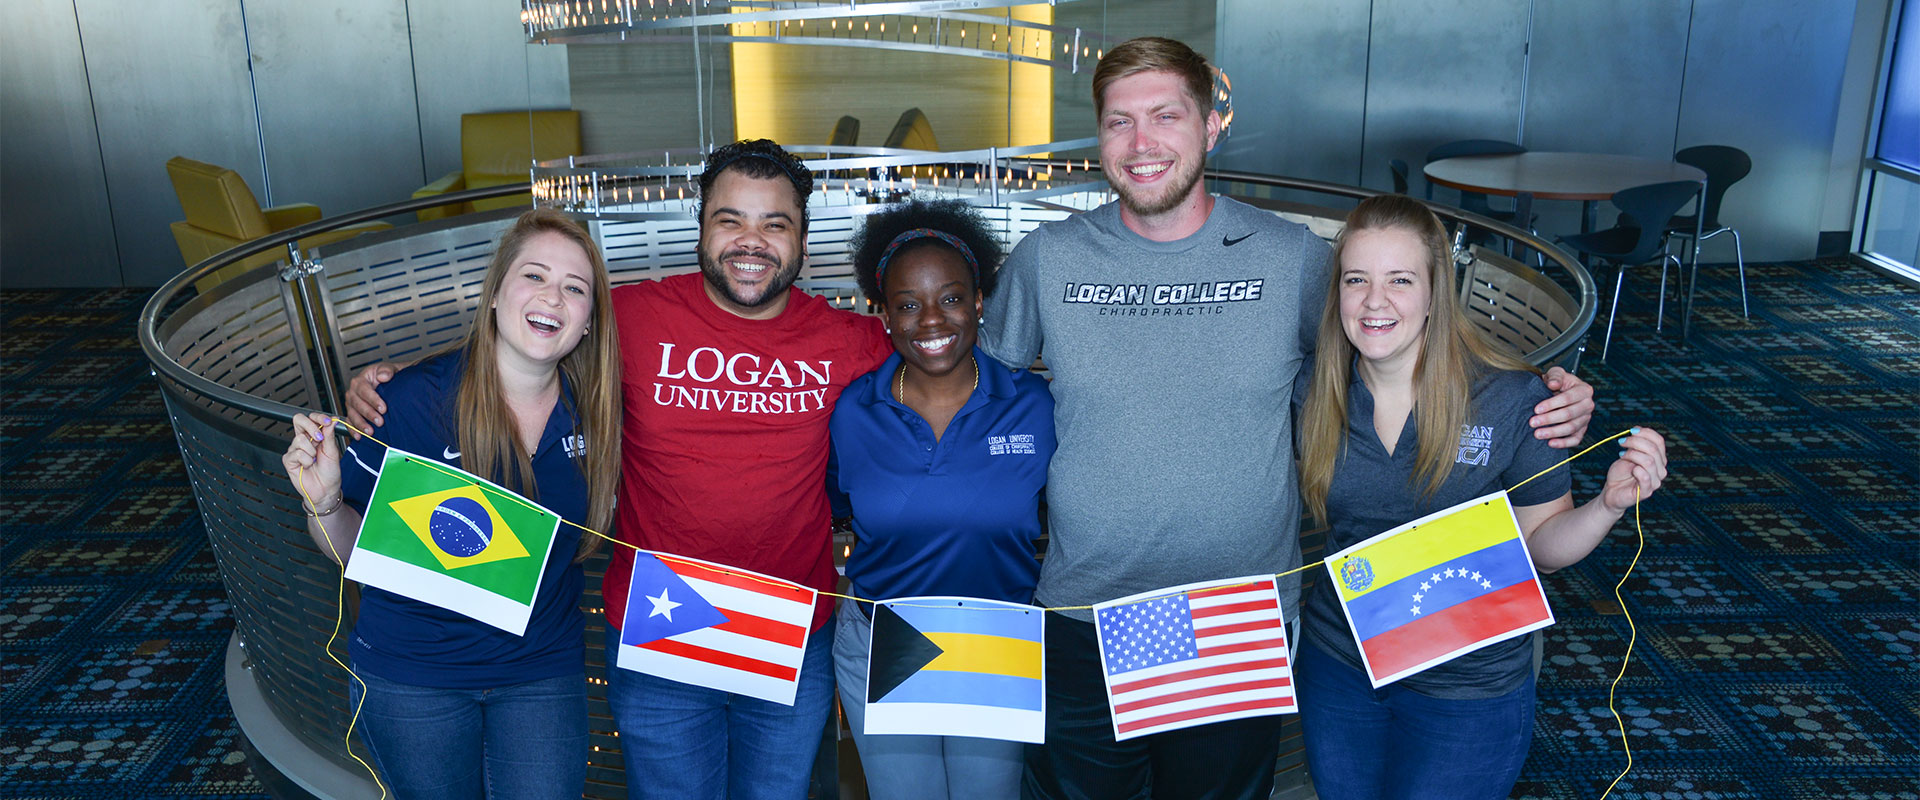 Group of international students smiling and holding flags.